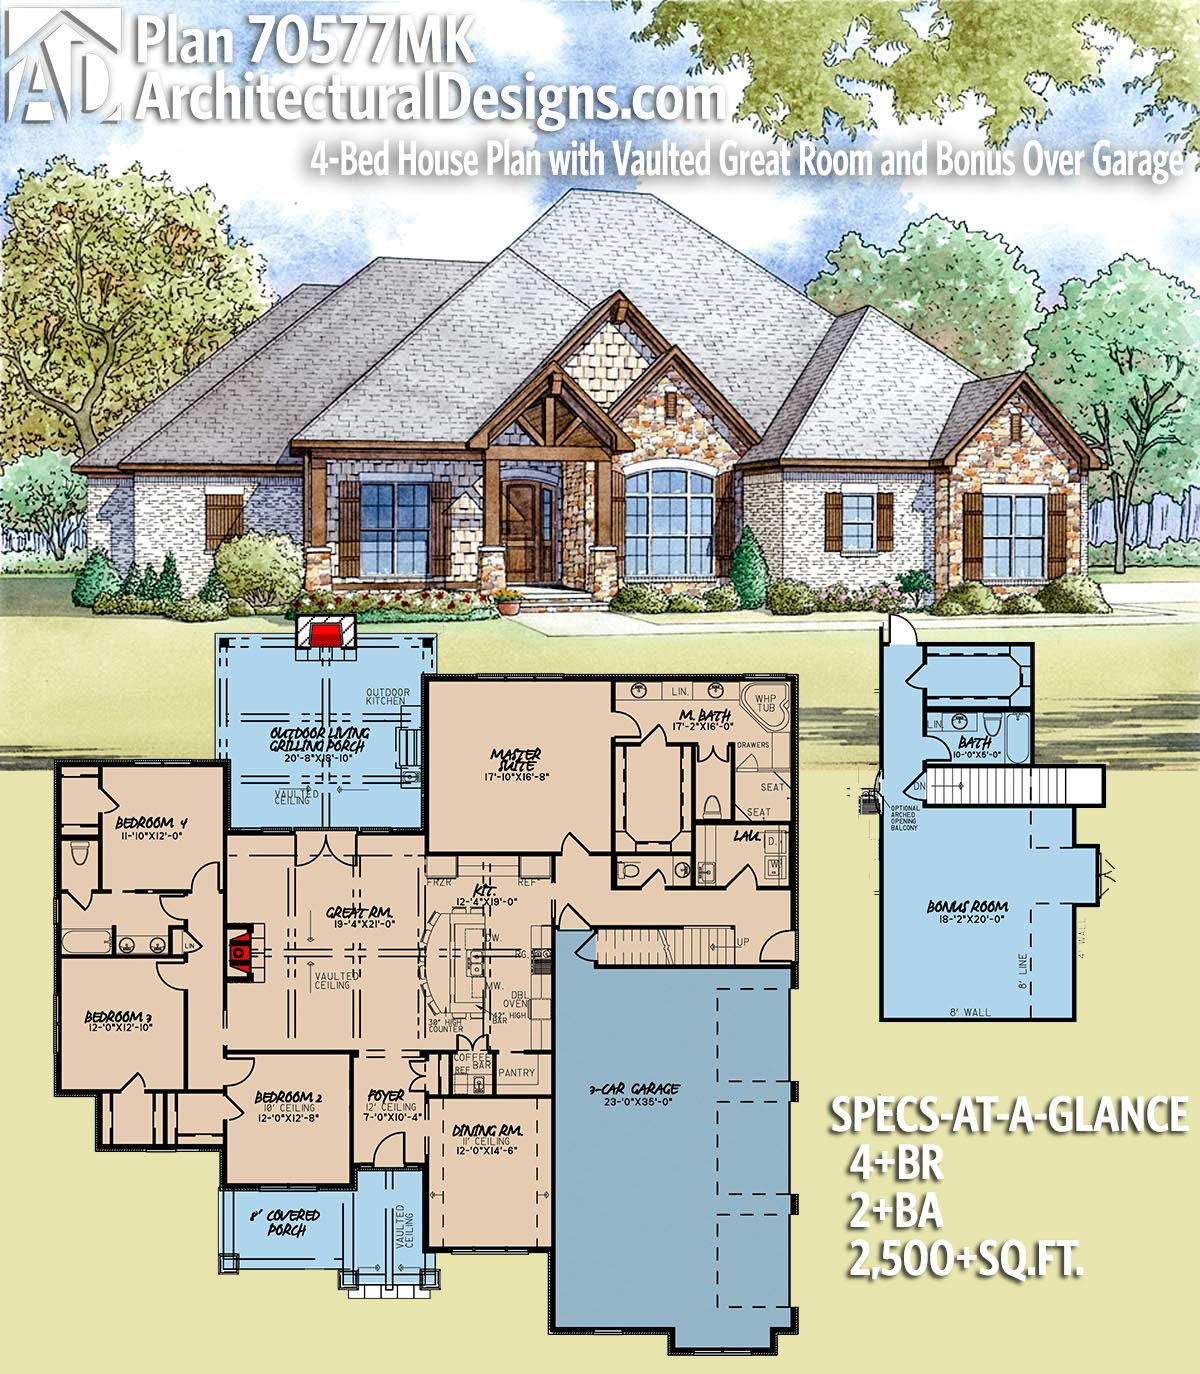 Plan mk bed house plan with vaulted great room and bonus